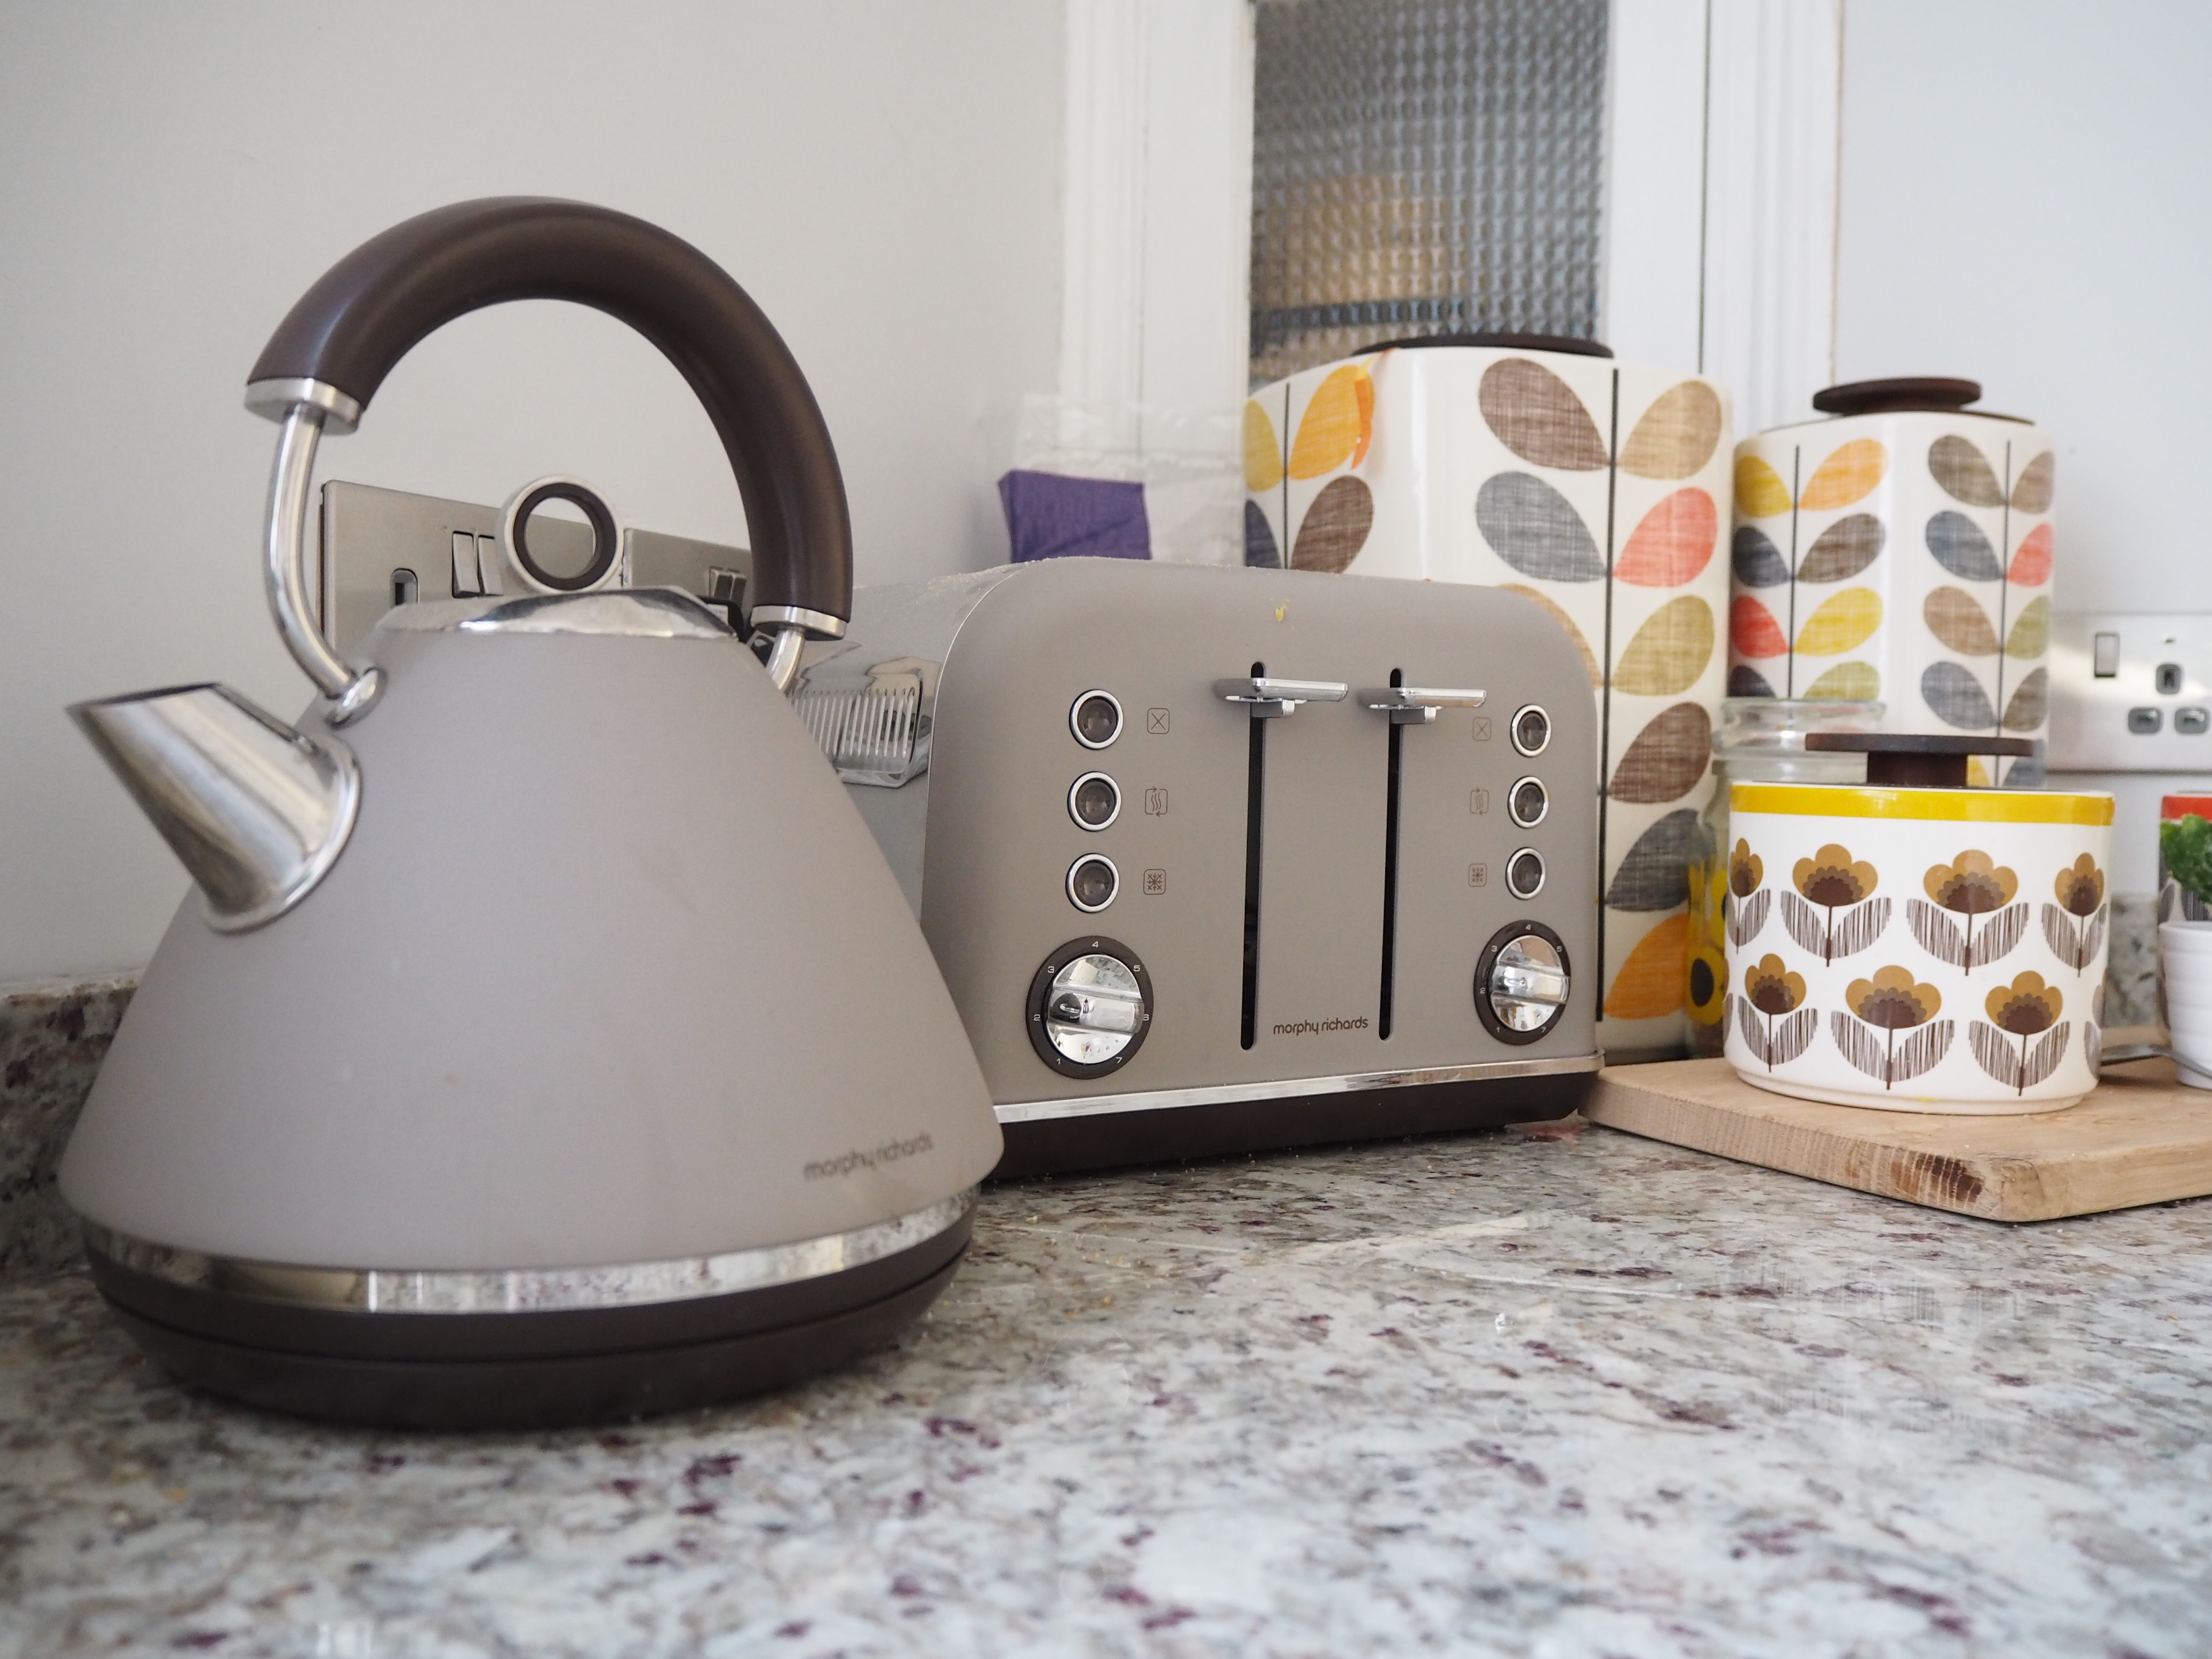 Grey Morphy Richards kettle toaster